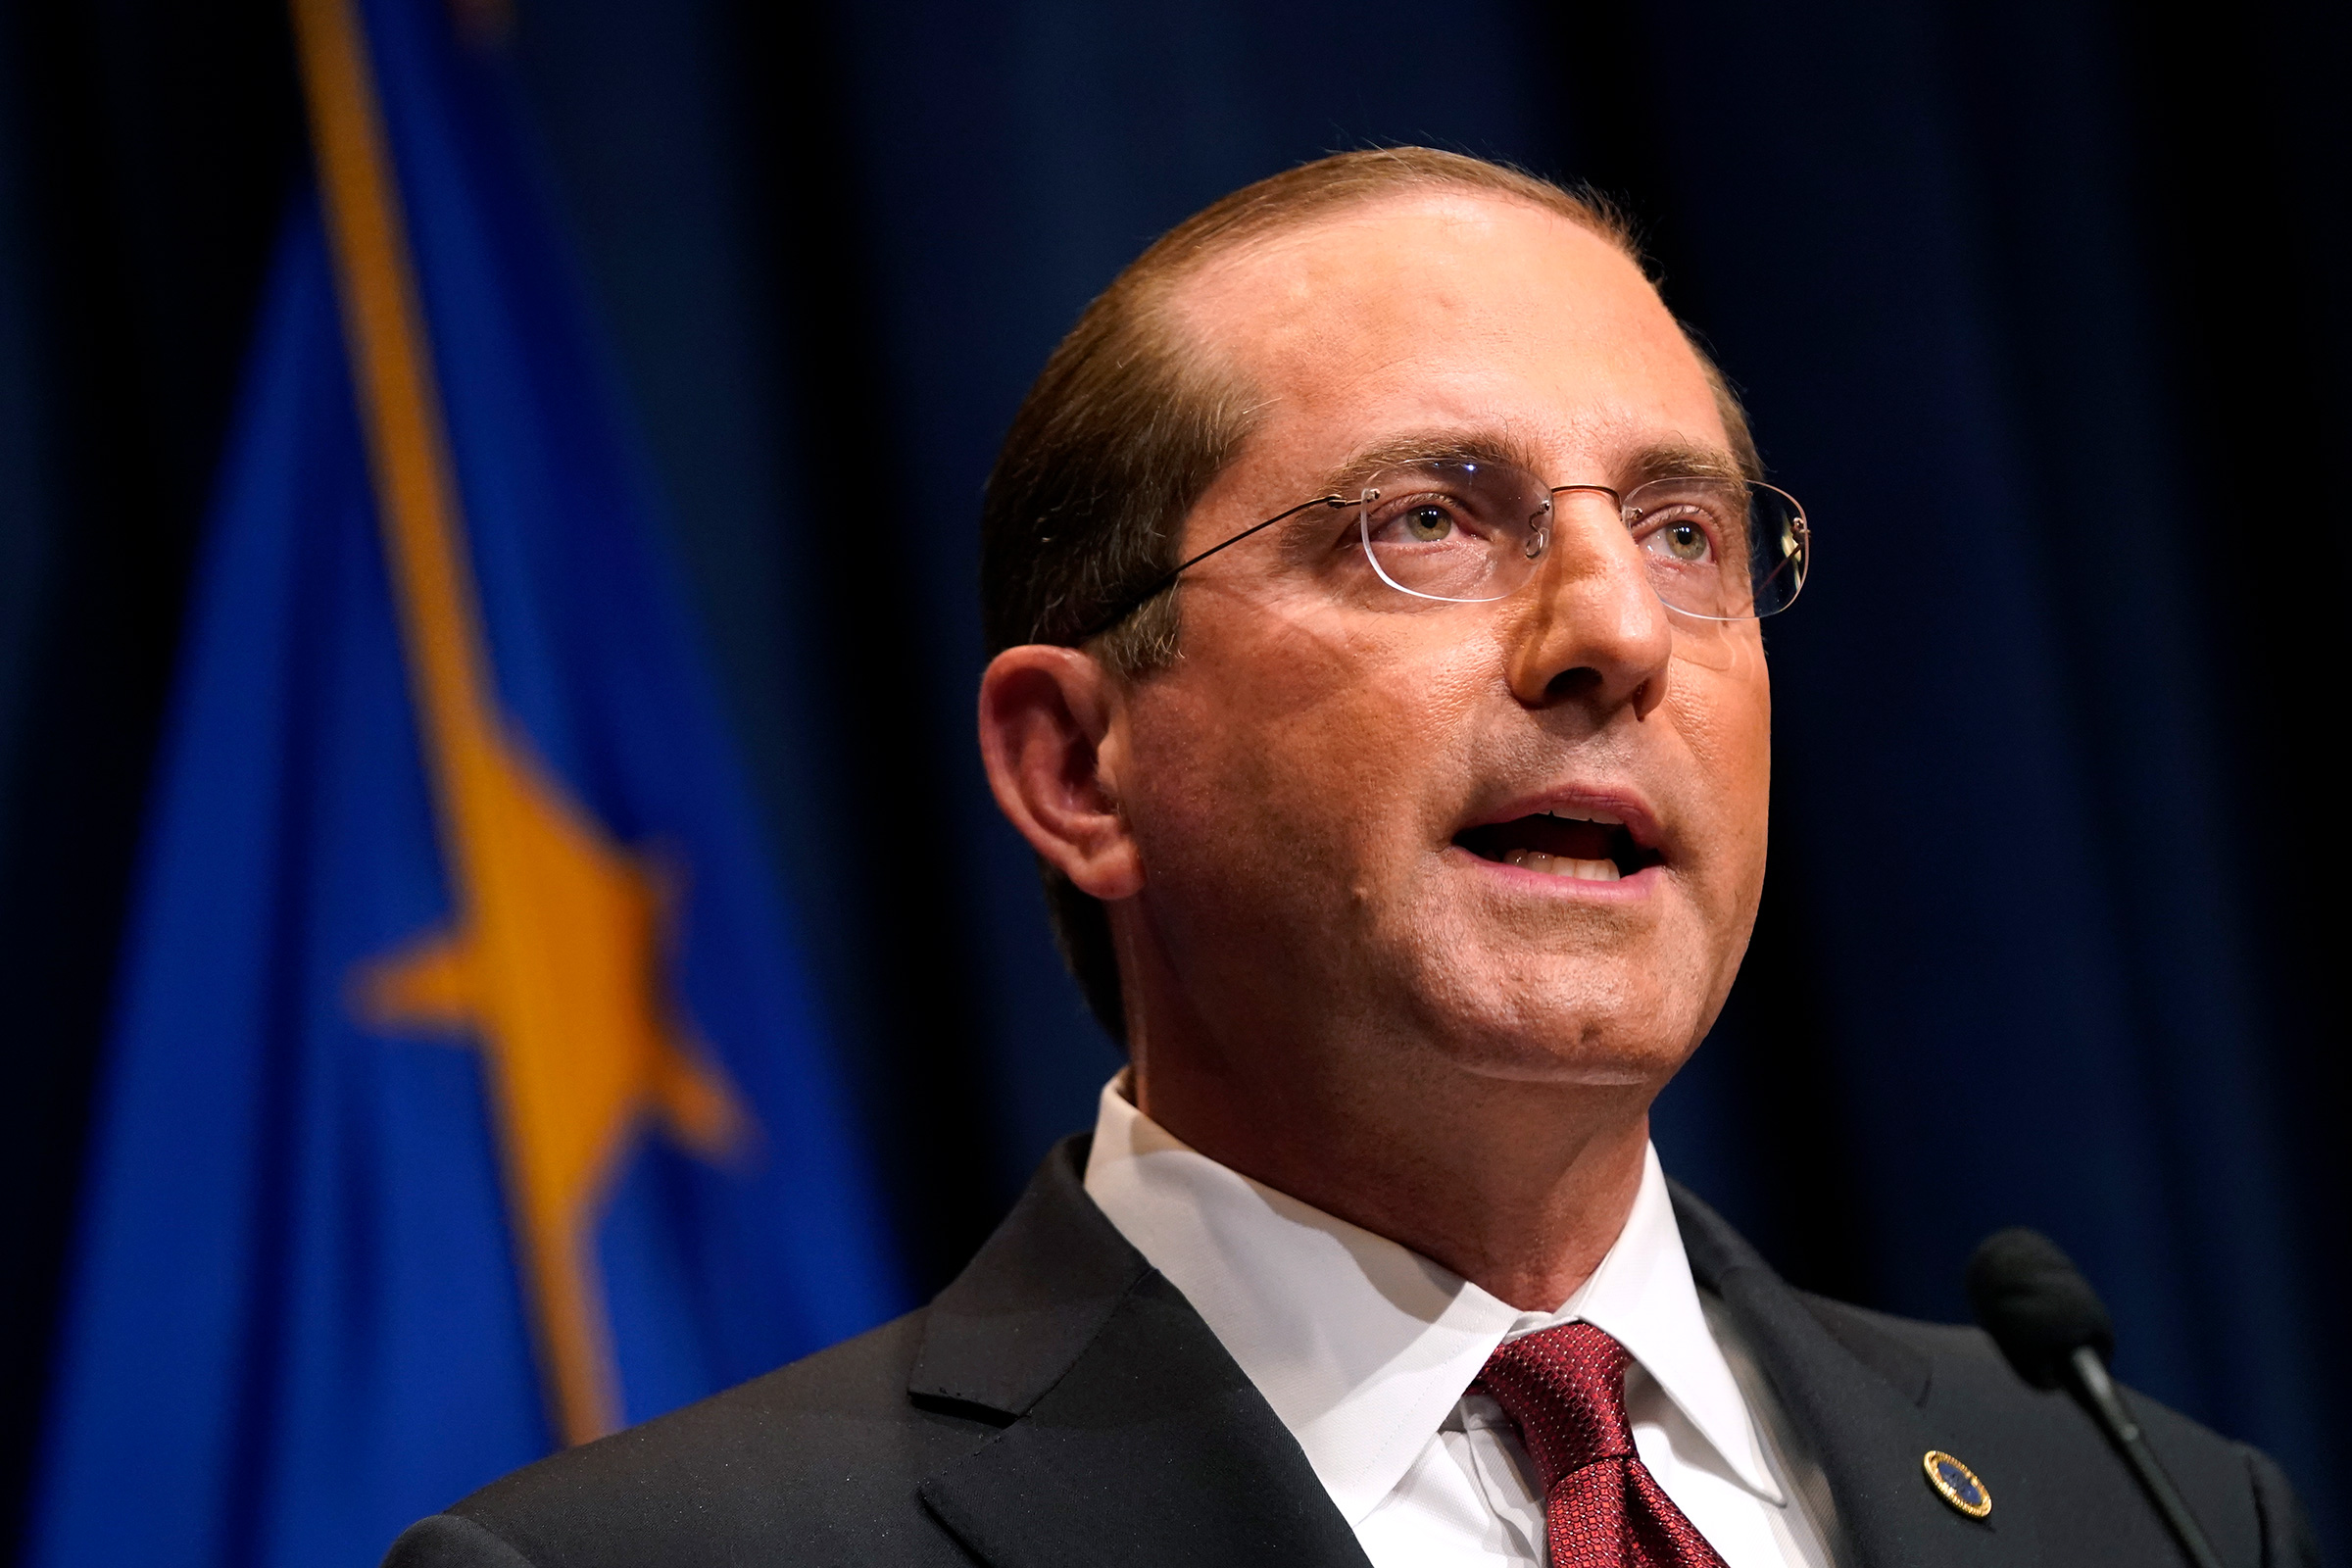 Health and Human Services Secretary Alex Azar speaks during a news conference on January 12, in Washington, DC.